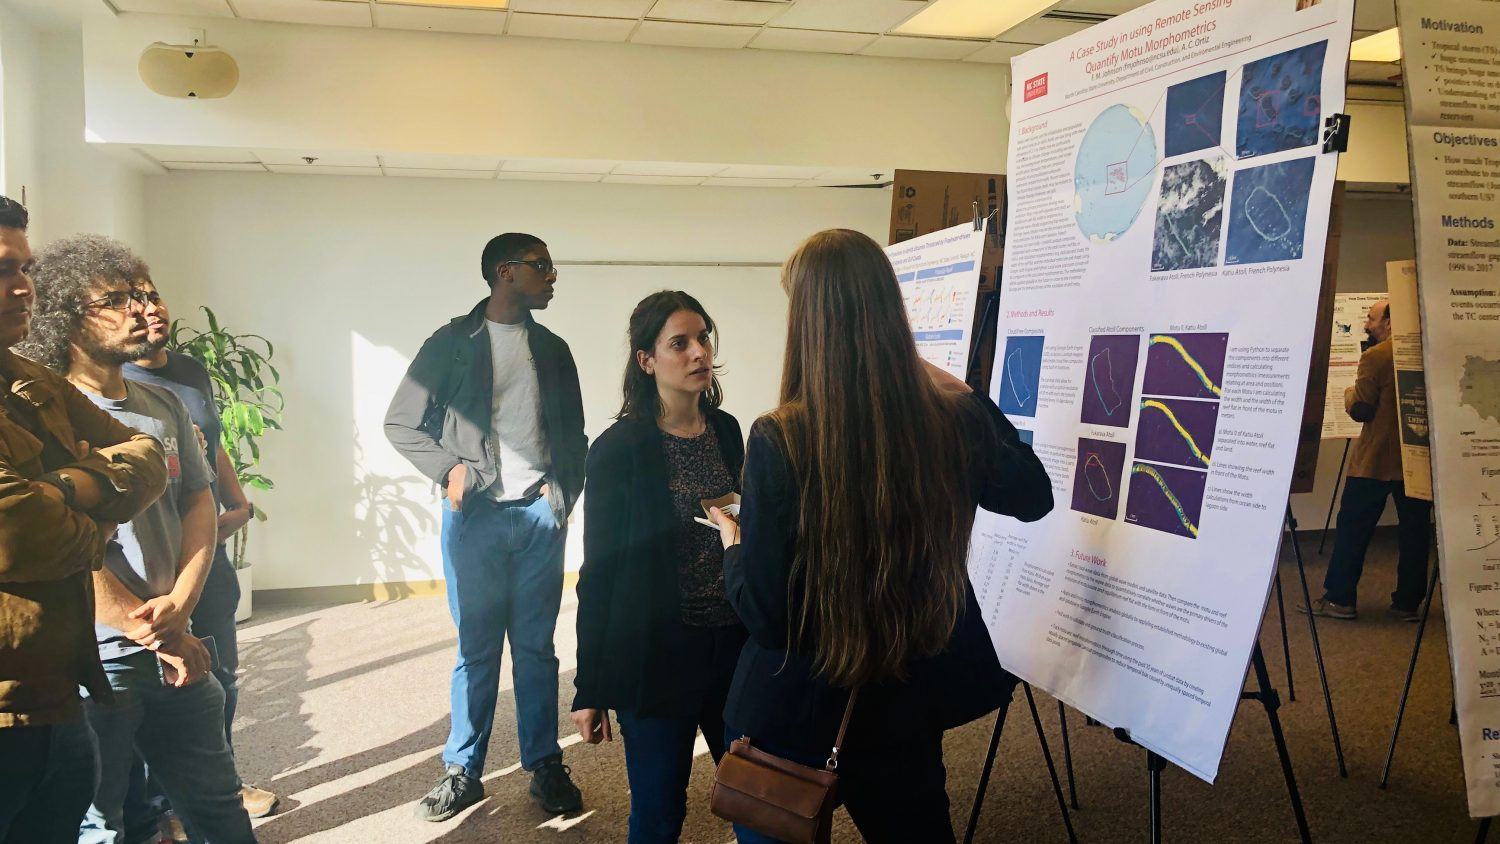 Students discuss a research poster at the RISING Poster Session.